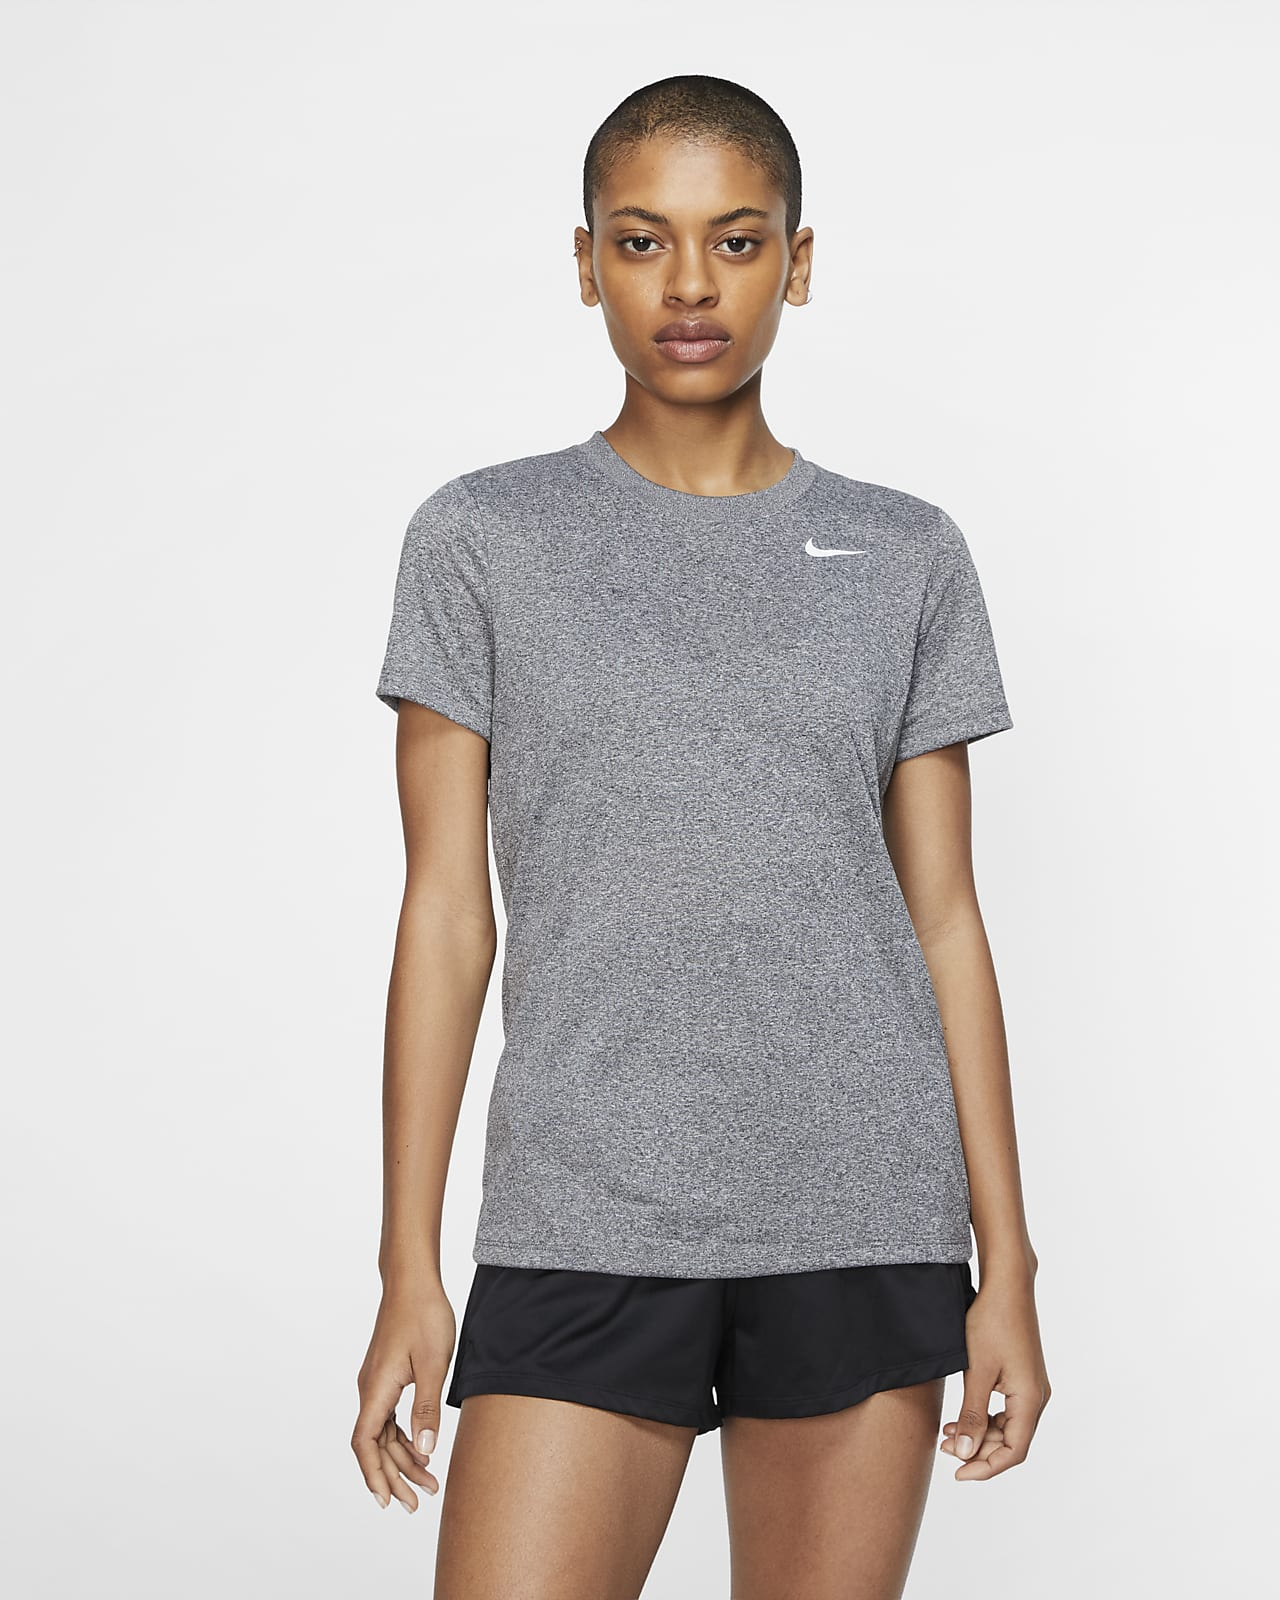 Nike Dri Fit Legend Women S Training T Shirt Nike Jp Take a pick from our selection of. nike dri fit legend women s training t shirt